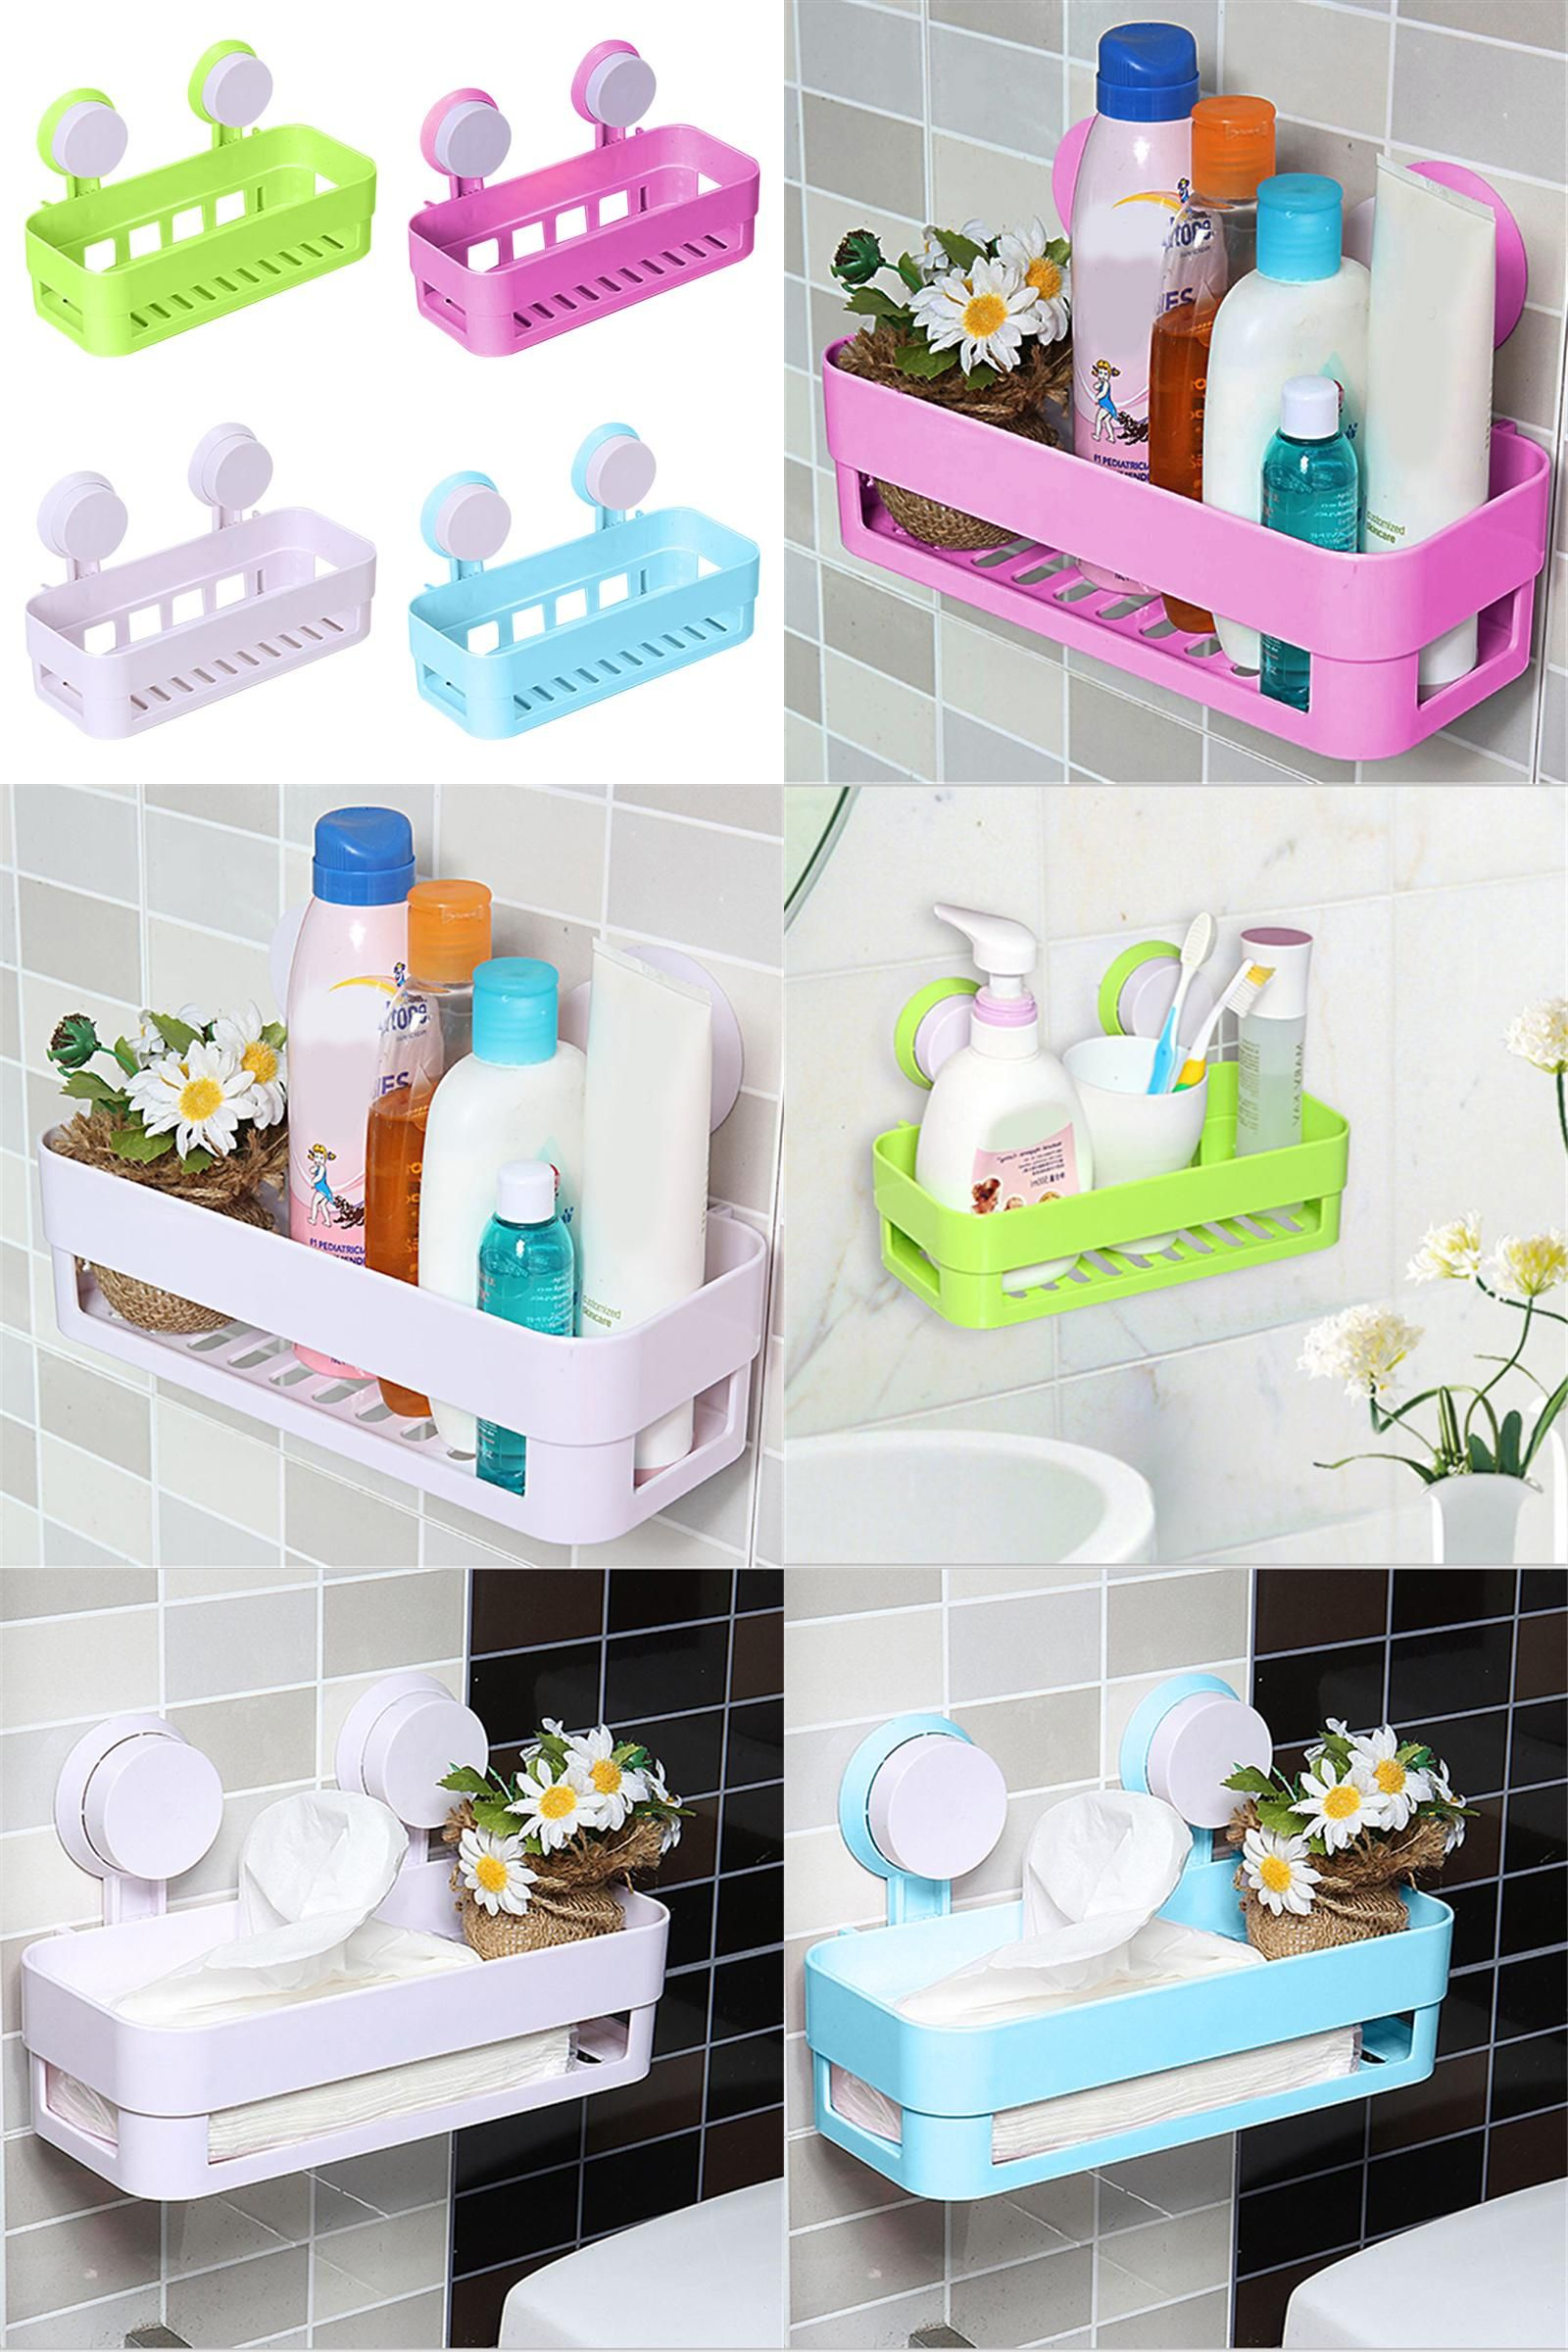 Plastic removable bath shelf wall mounted cosmetic holder storage -  Visit To Buy 26 12 7cm Multipurpose Kitchen Storage Holder Bathroom Shelf